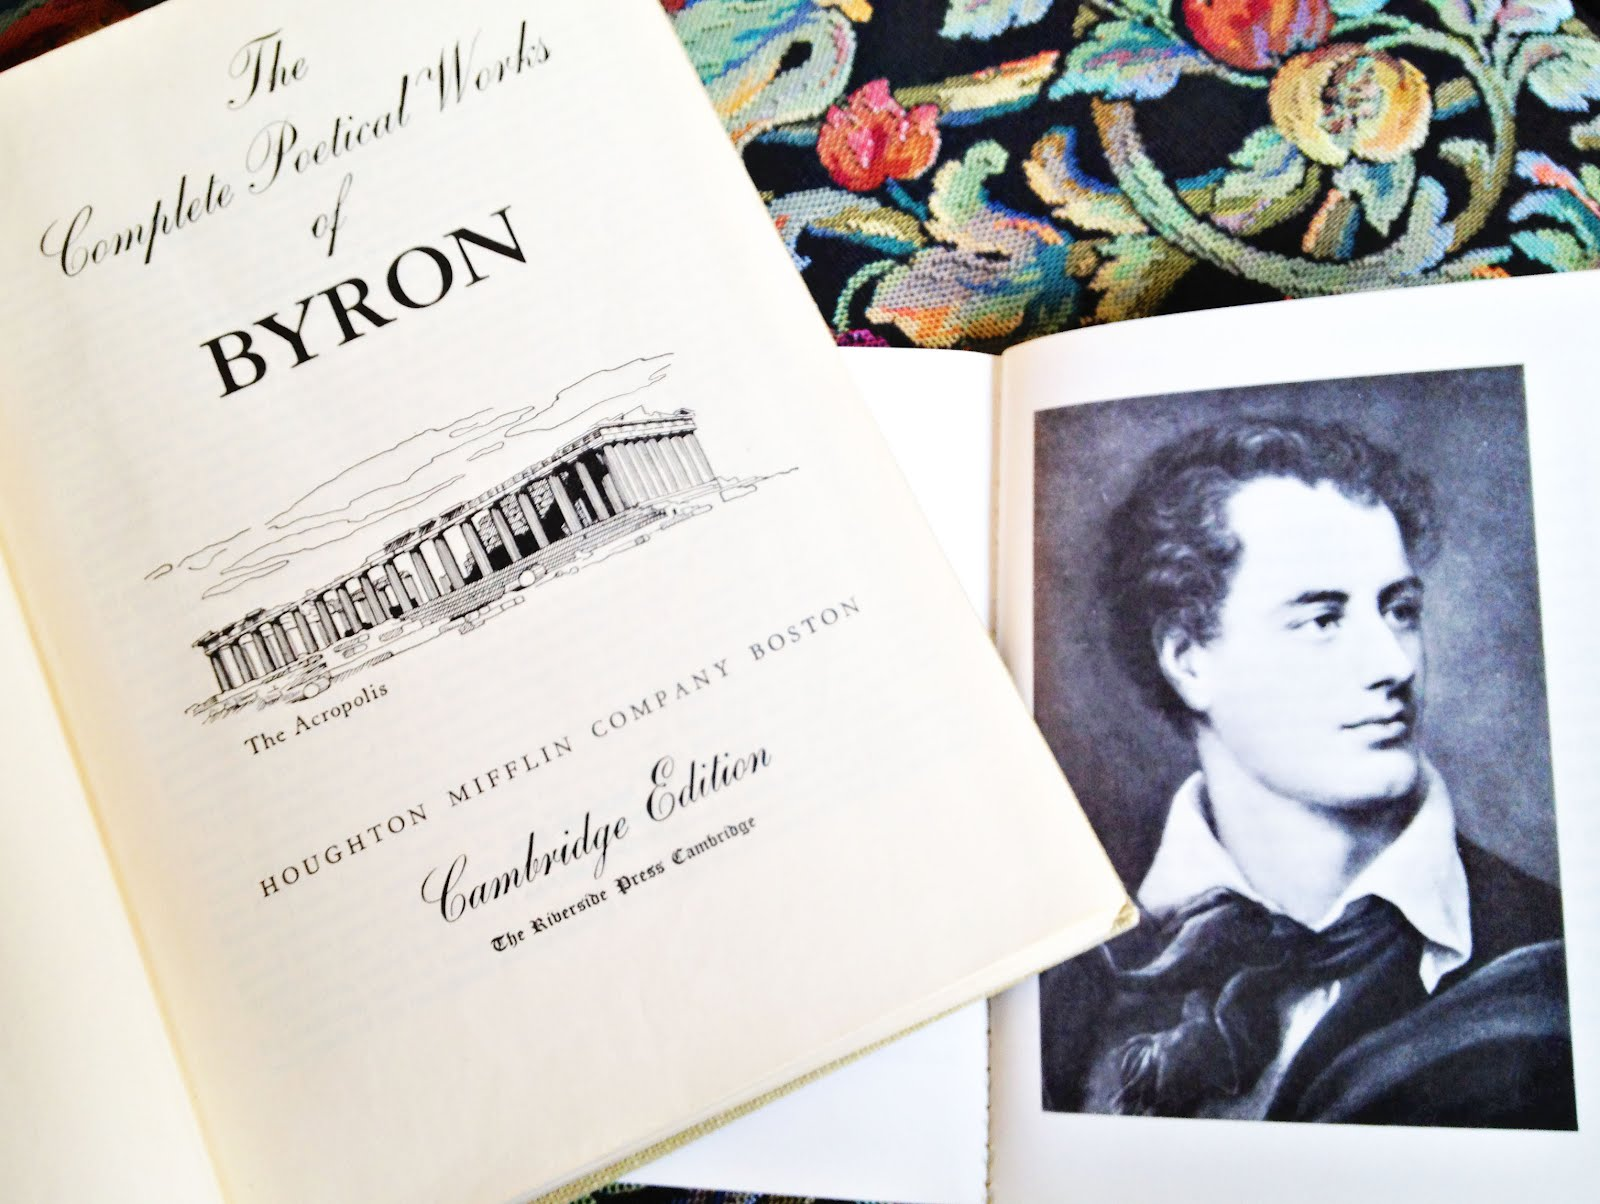 by Lord Byron (George Gordon)